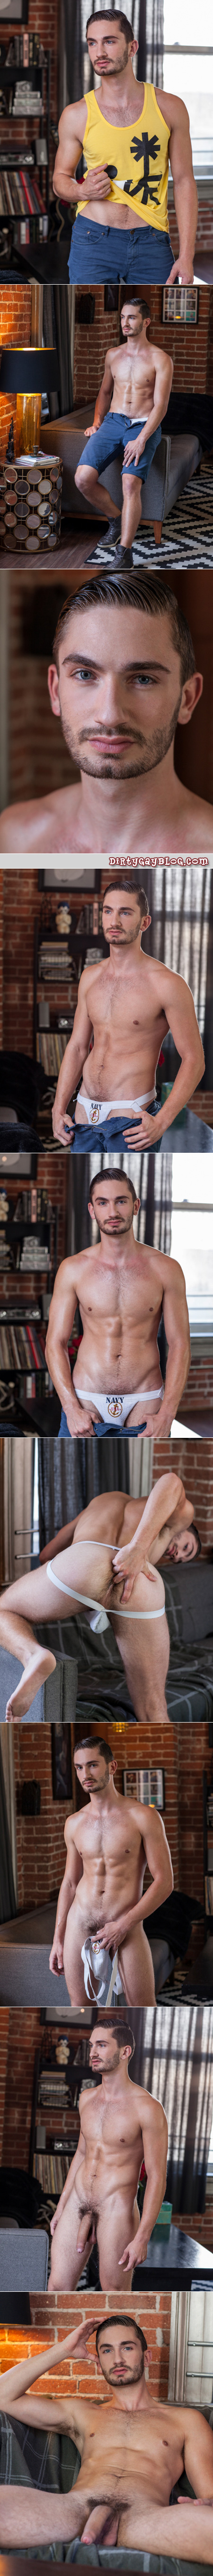 Scruffy young guy in a jockstrap exposing his enormous white dick.